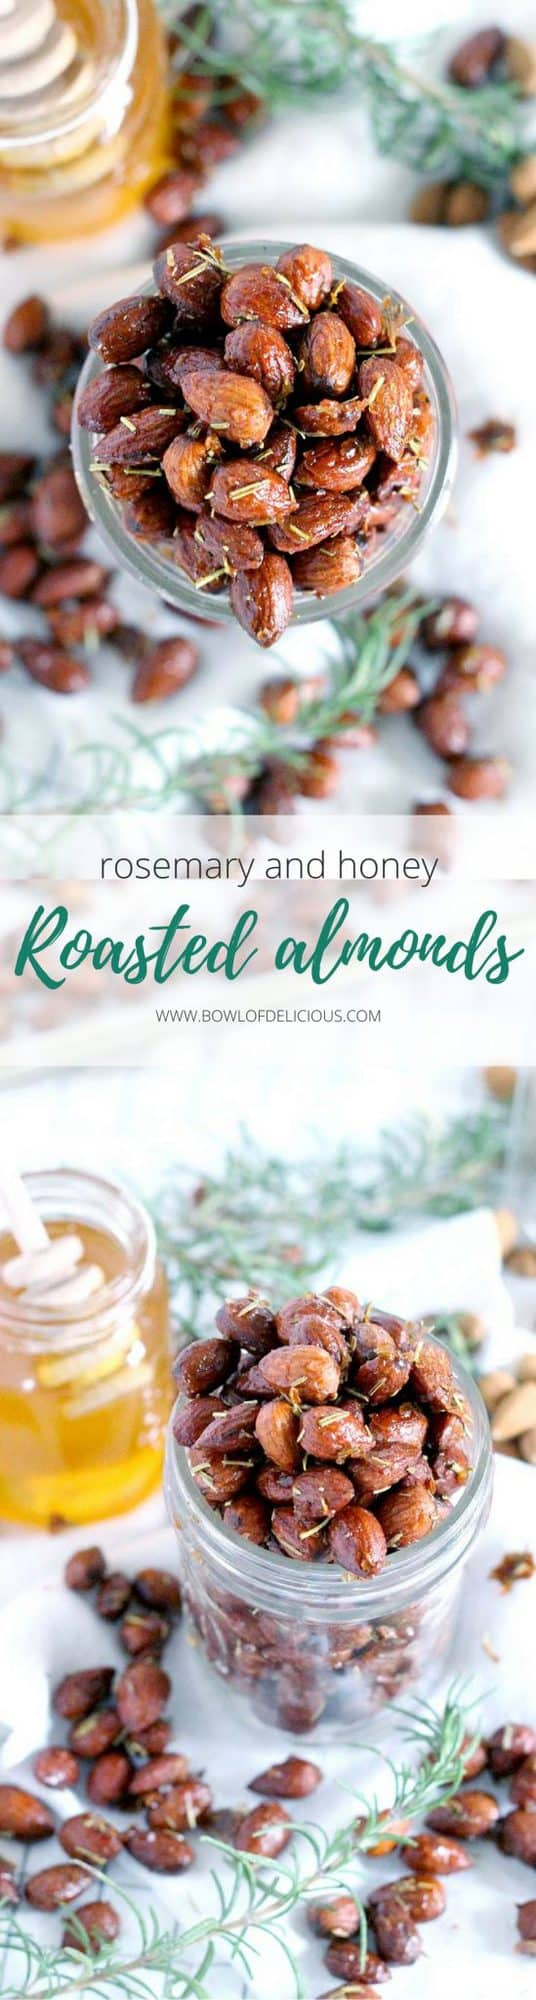 These Rosemary and Honey Roasted Almonds would make an awesome DIY gift for the holidays! They are my new favorite snack recipe- savory, sweet, and nutritious for a guilt-free midday treat! Plus, they're a cinch to make. #Almonds #DIYEdibleGift #RoastedNuts #Honey #Rosemary #HealthySnacks #HolidayGift